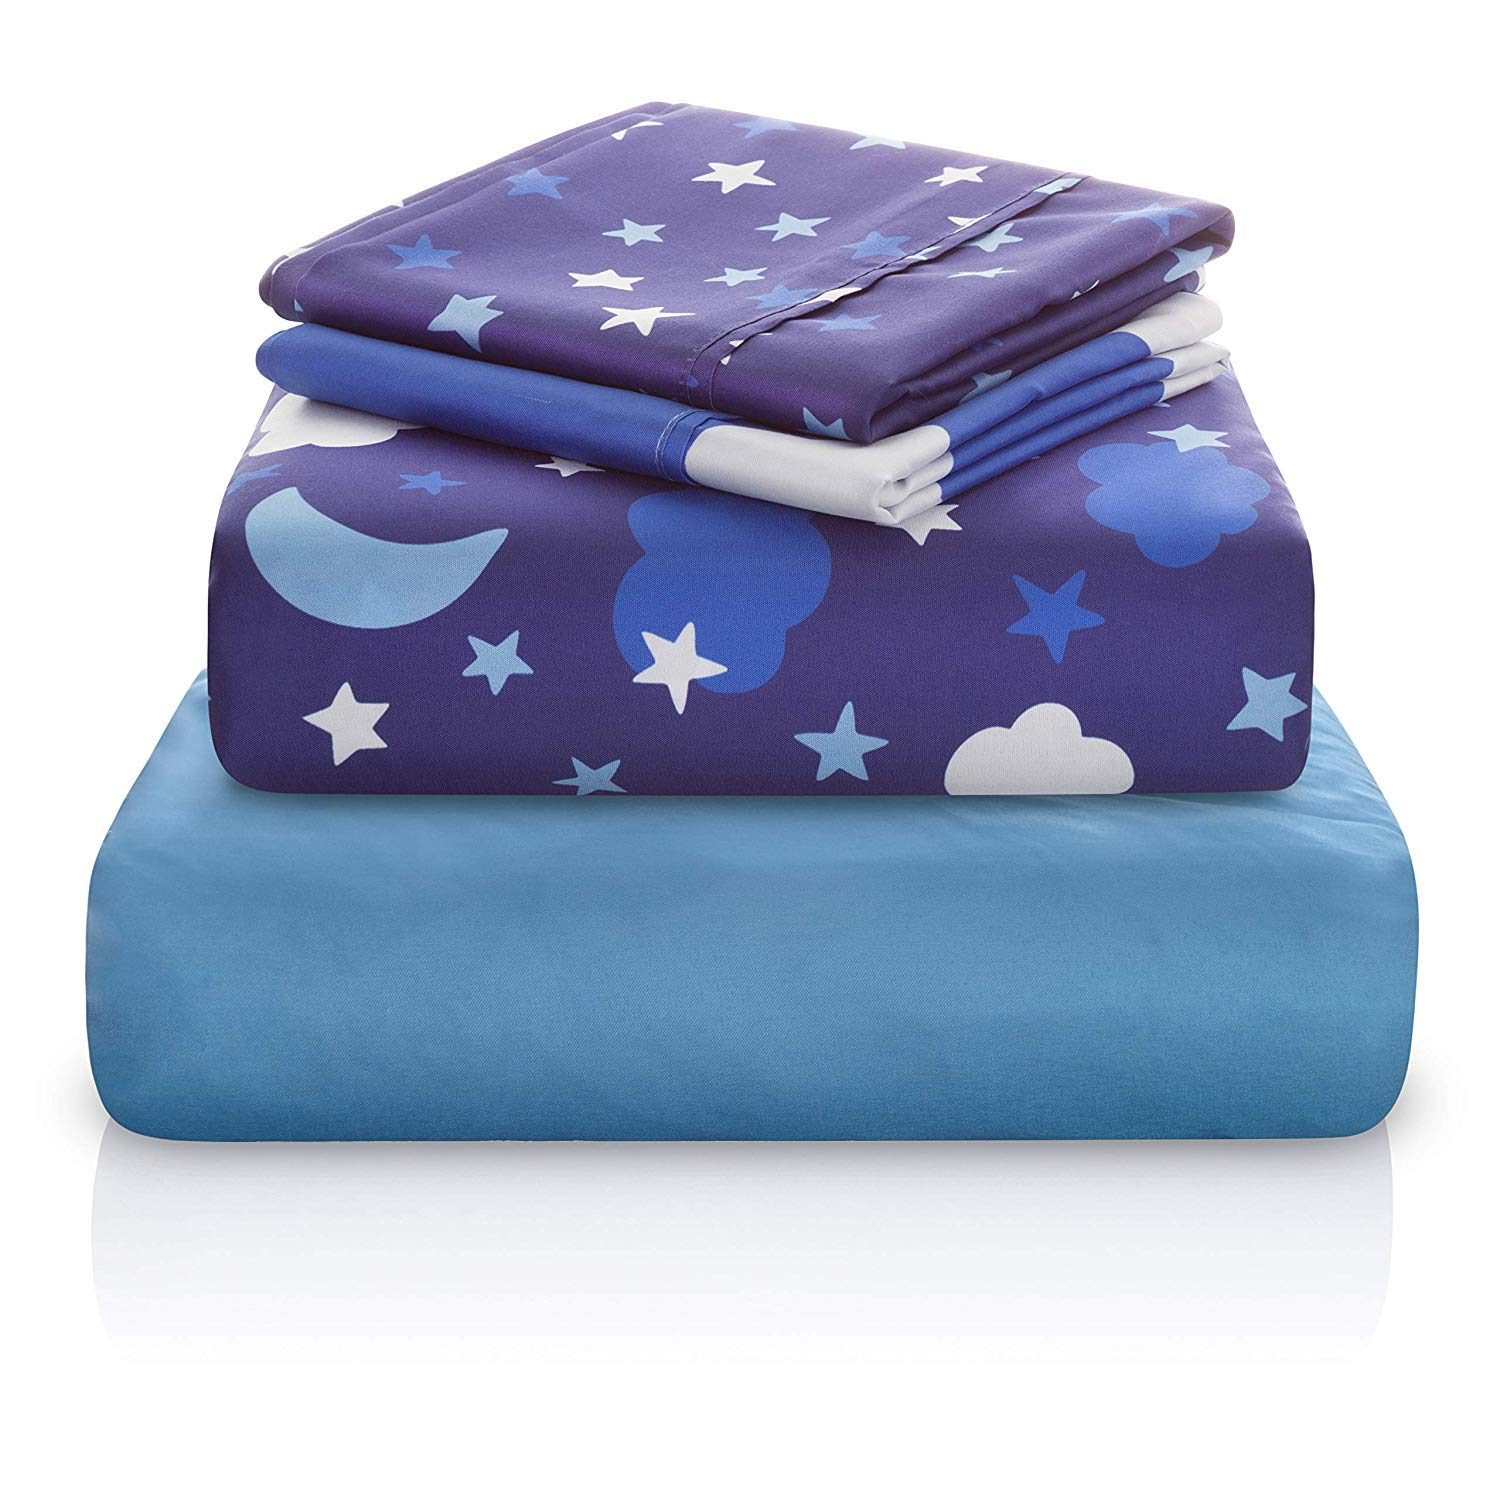 Chital Unisex Twin Bed Sheets | 4 Pc Gender Neutral Kids Bedding Set | Starry Night Sky Print | 1 Flat & 1 Fitted Sheet, 2 Pillow Cases | Durable Super-Soft, Double-Brushed Microfiber | 15'' Deep